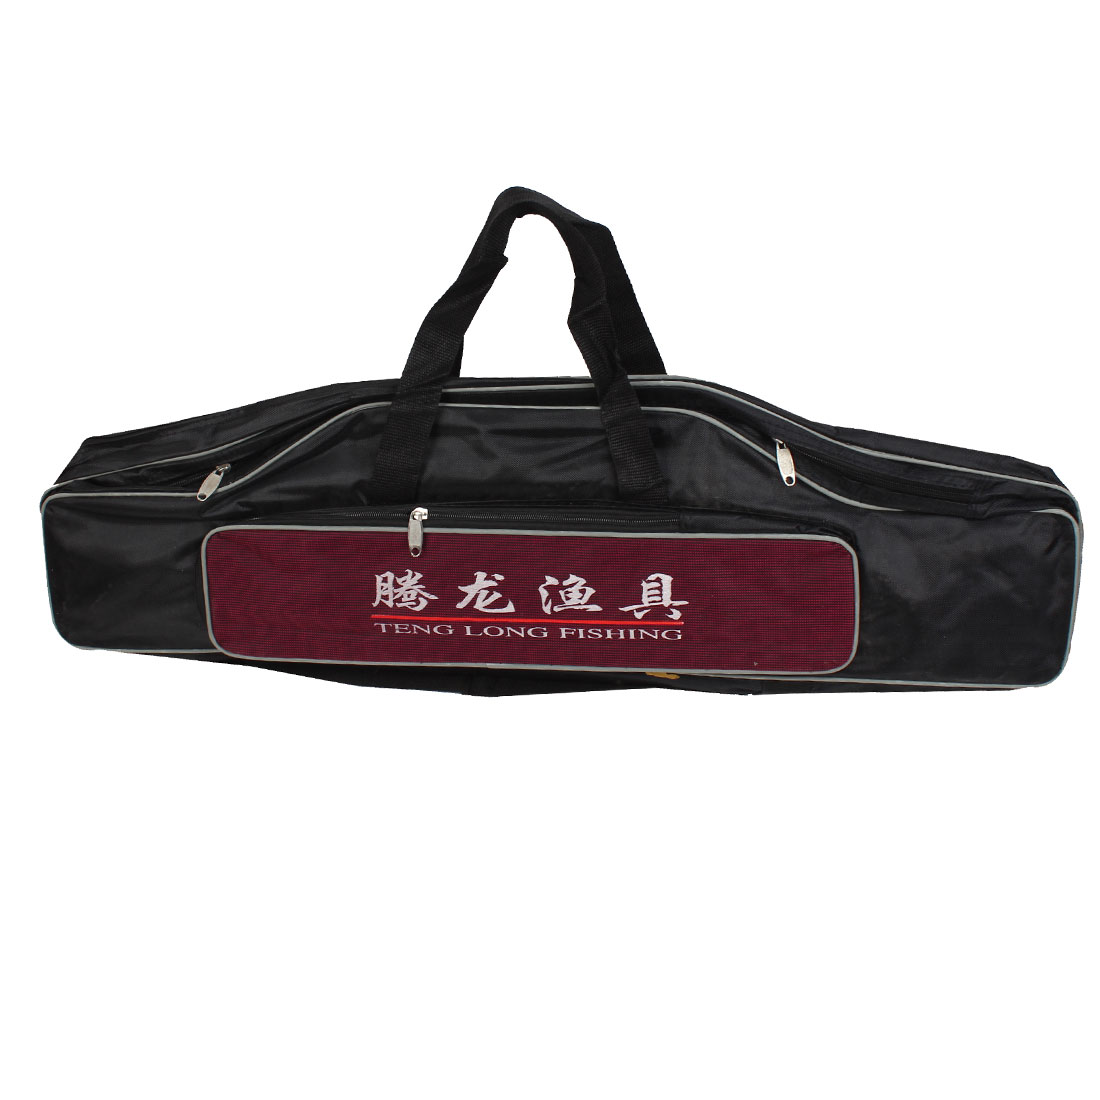 Zip Up 5 Compartment Nylon Angling Fishing Rod Pole Carrying Bag Black Burgundy 31""